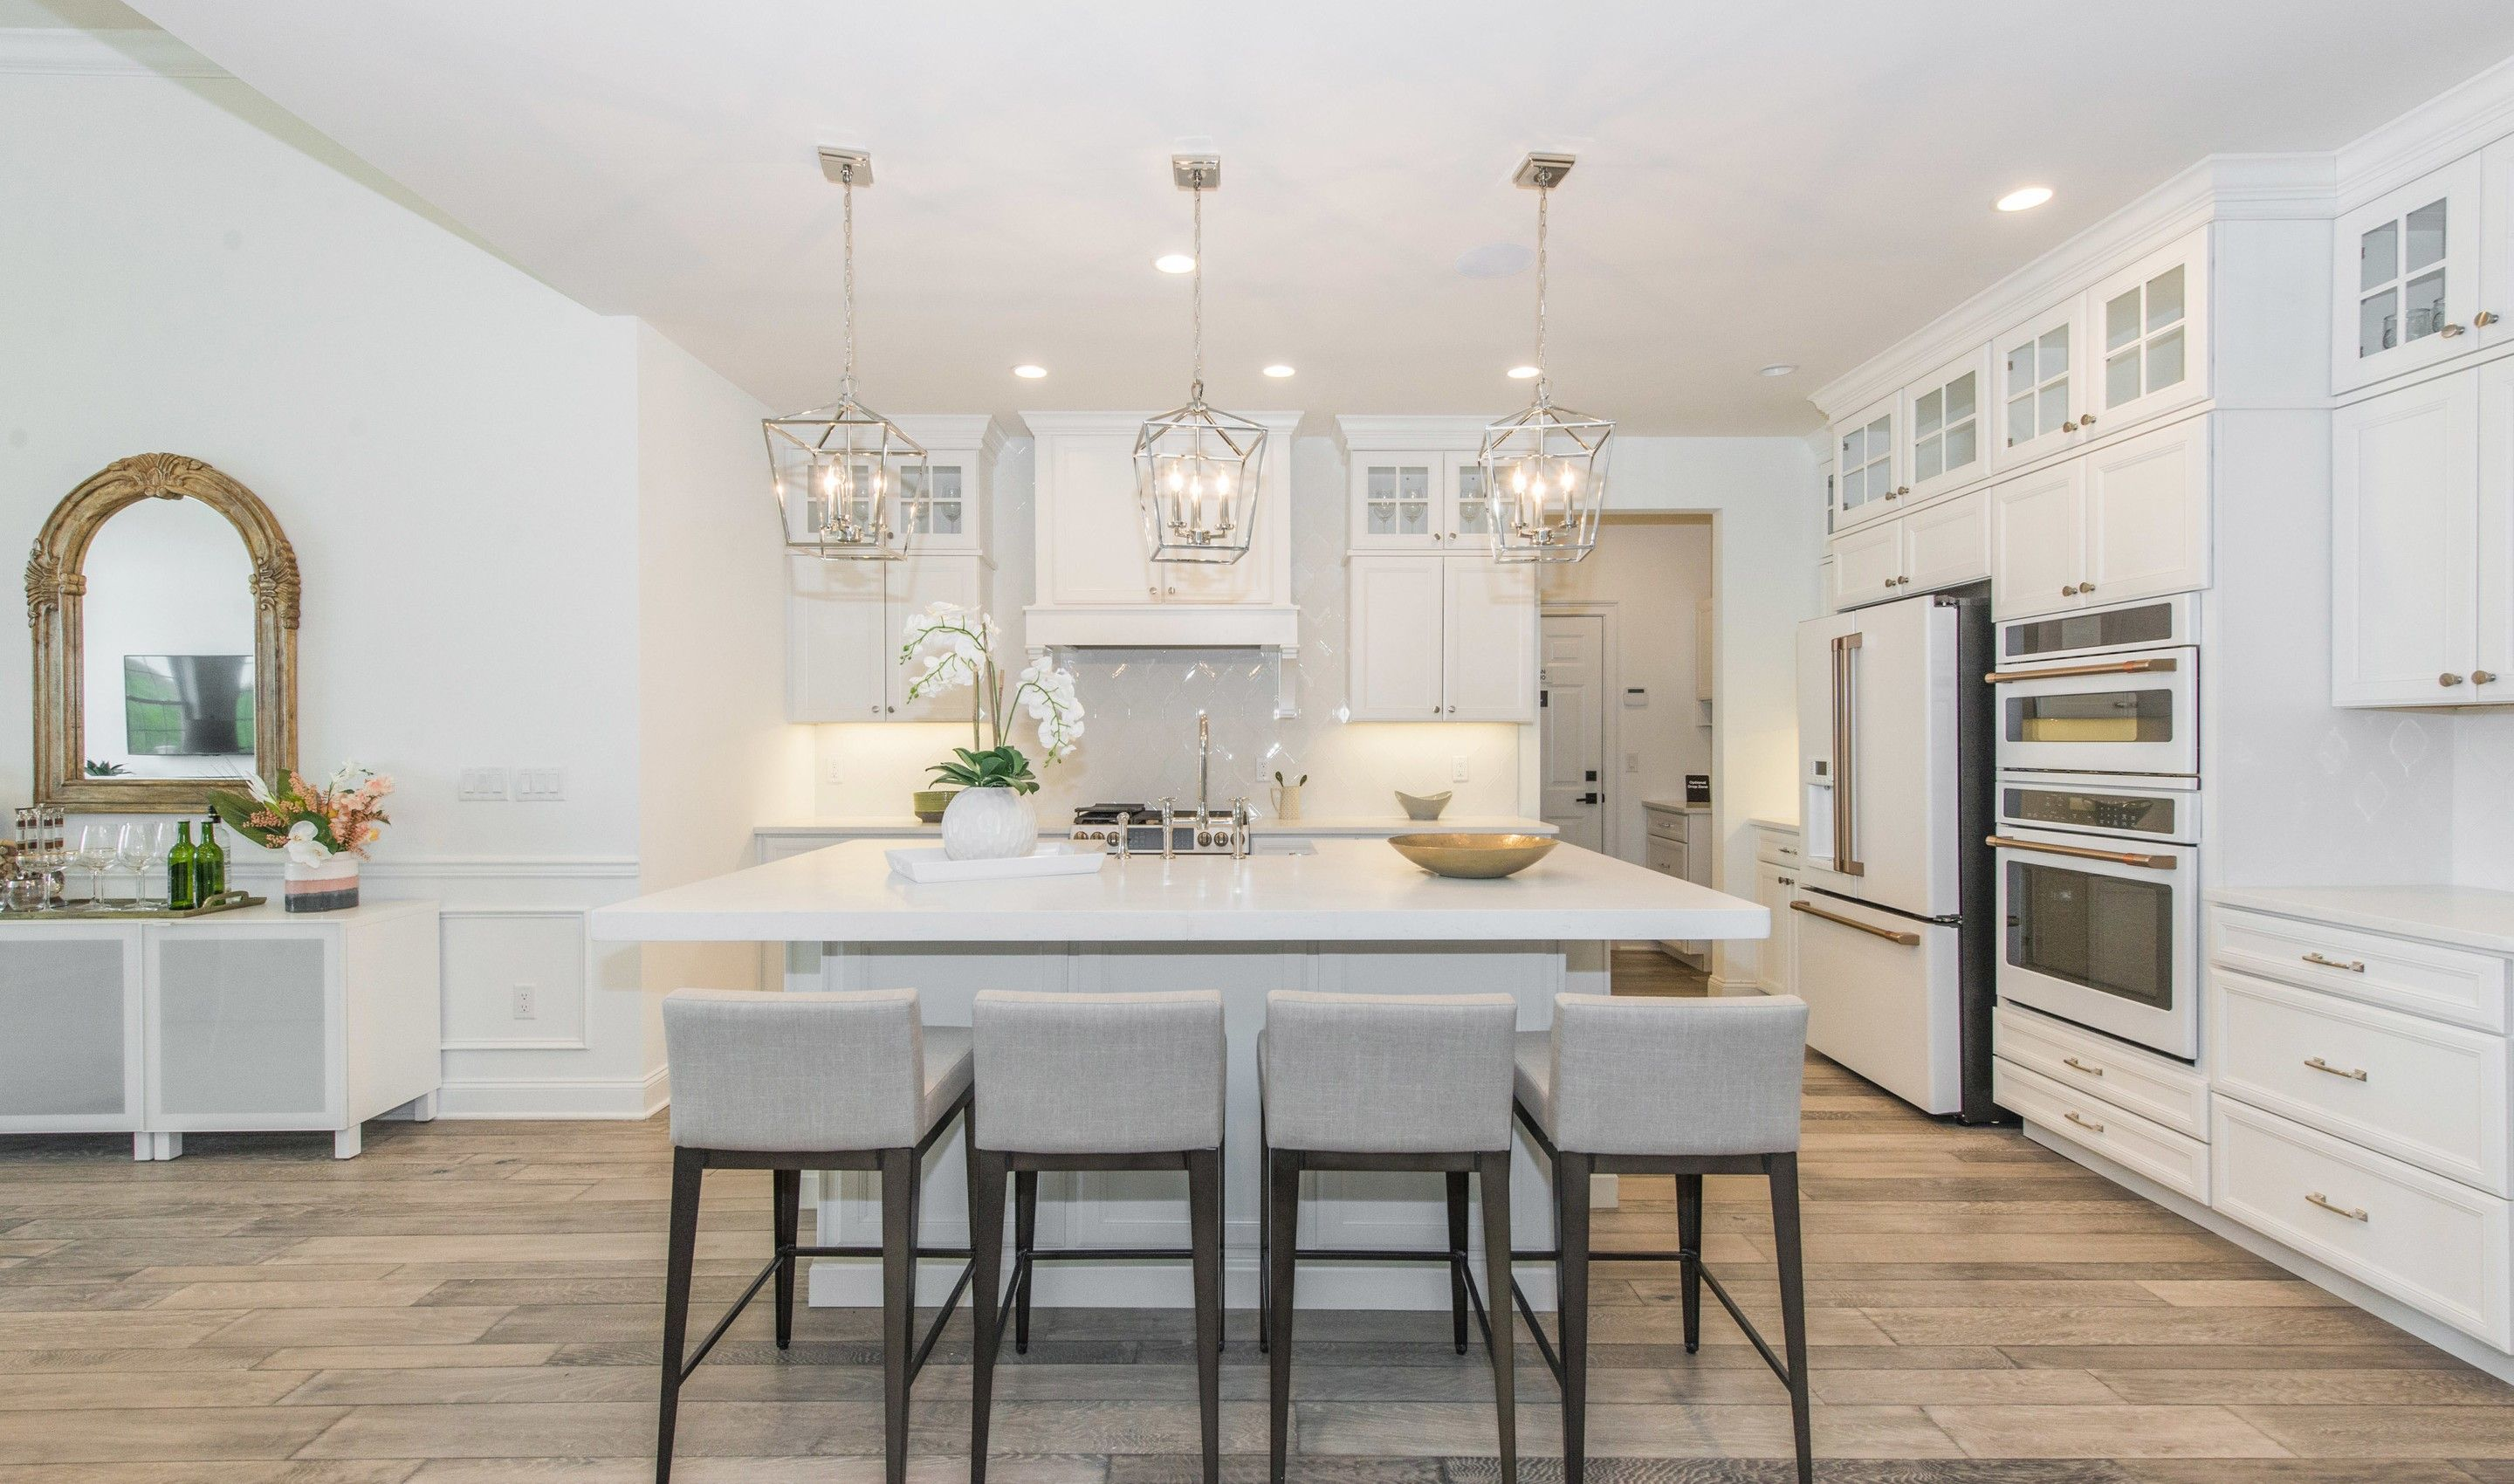 Kitchen featured in the Pratt By K. Hovnanian® Homes in Essex County, NJ